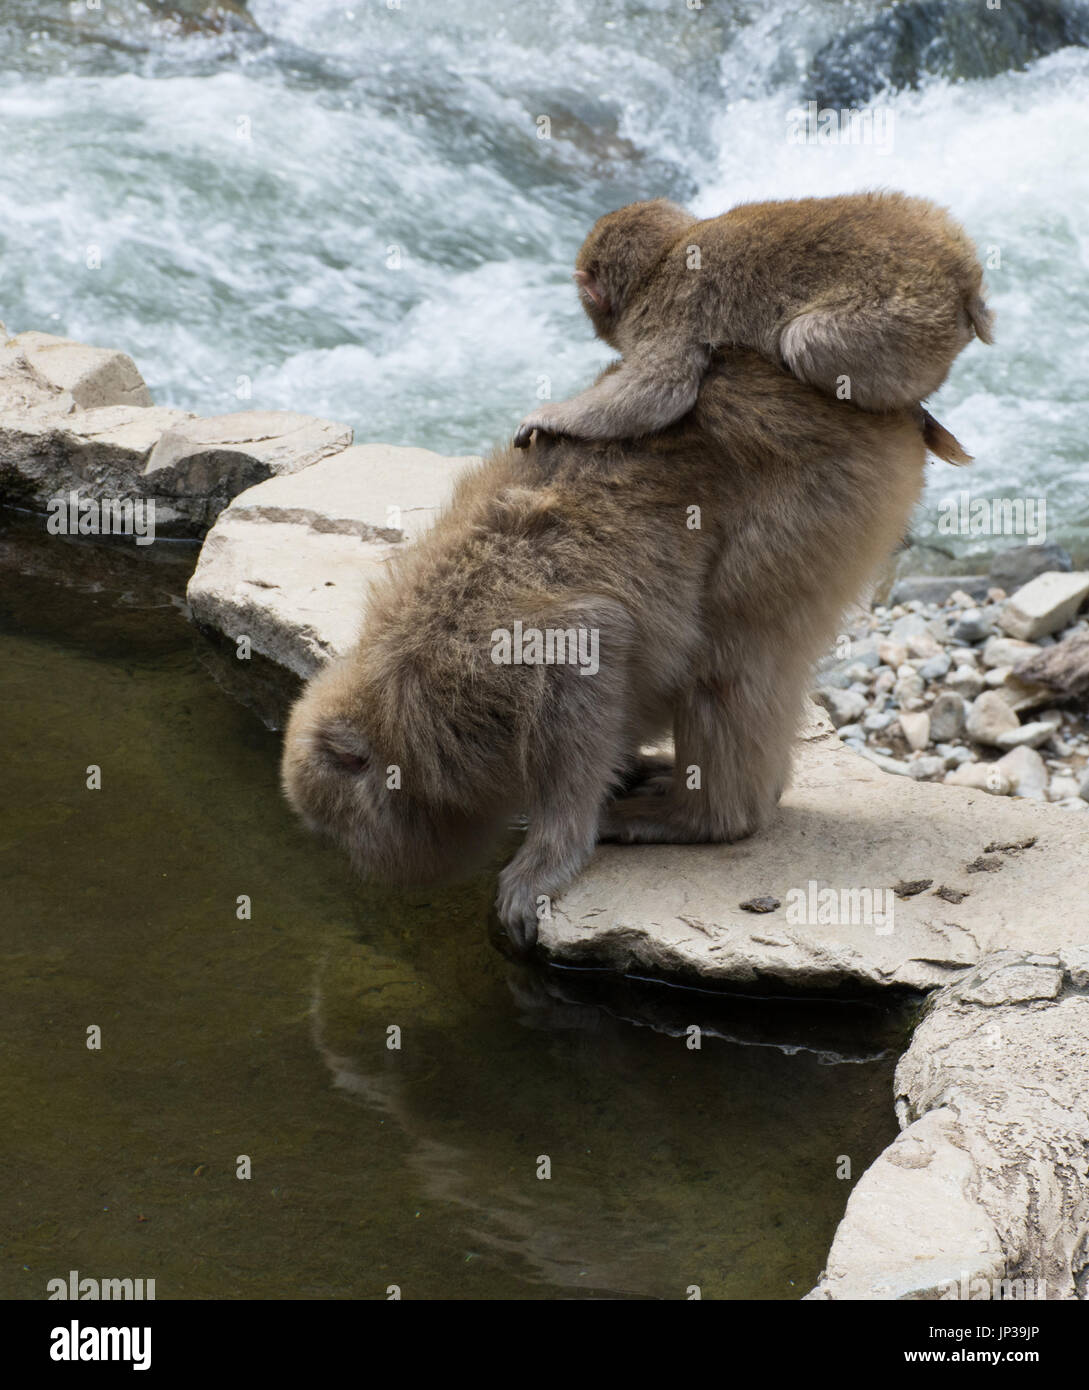 Baby snow monkey perched on mom while she drinks from the hot spring pool. These Japanese macaques are on a rock slab between the pool and a river. - Stock Image